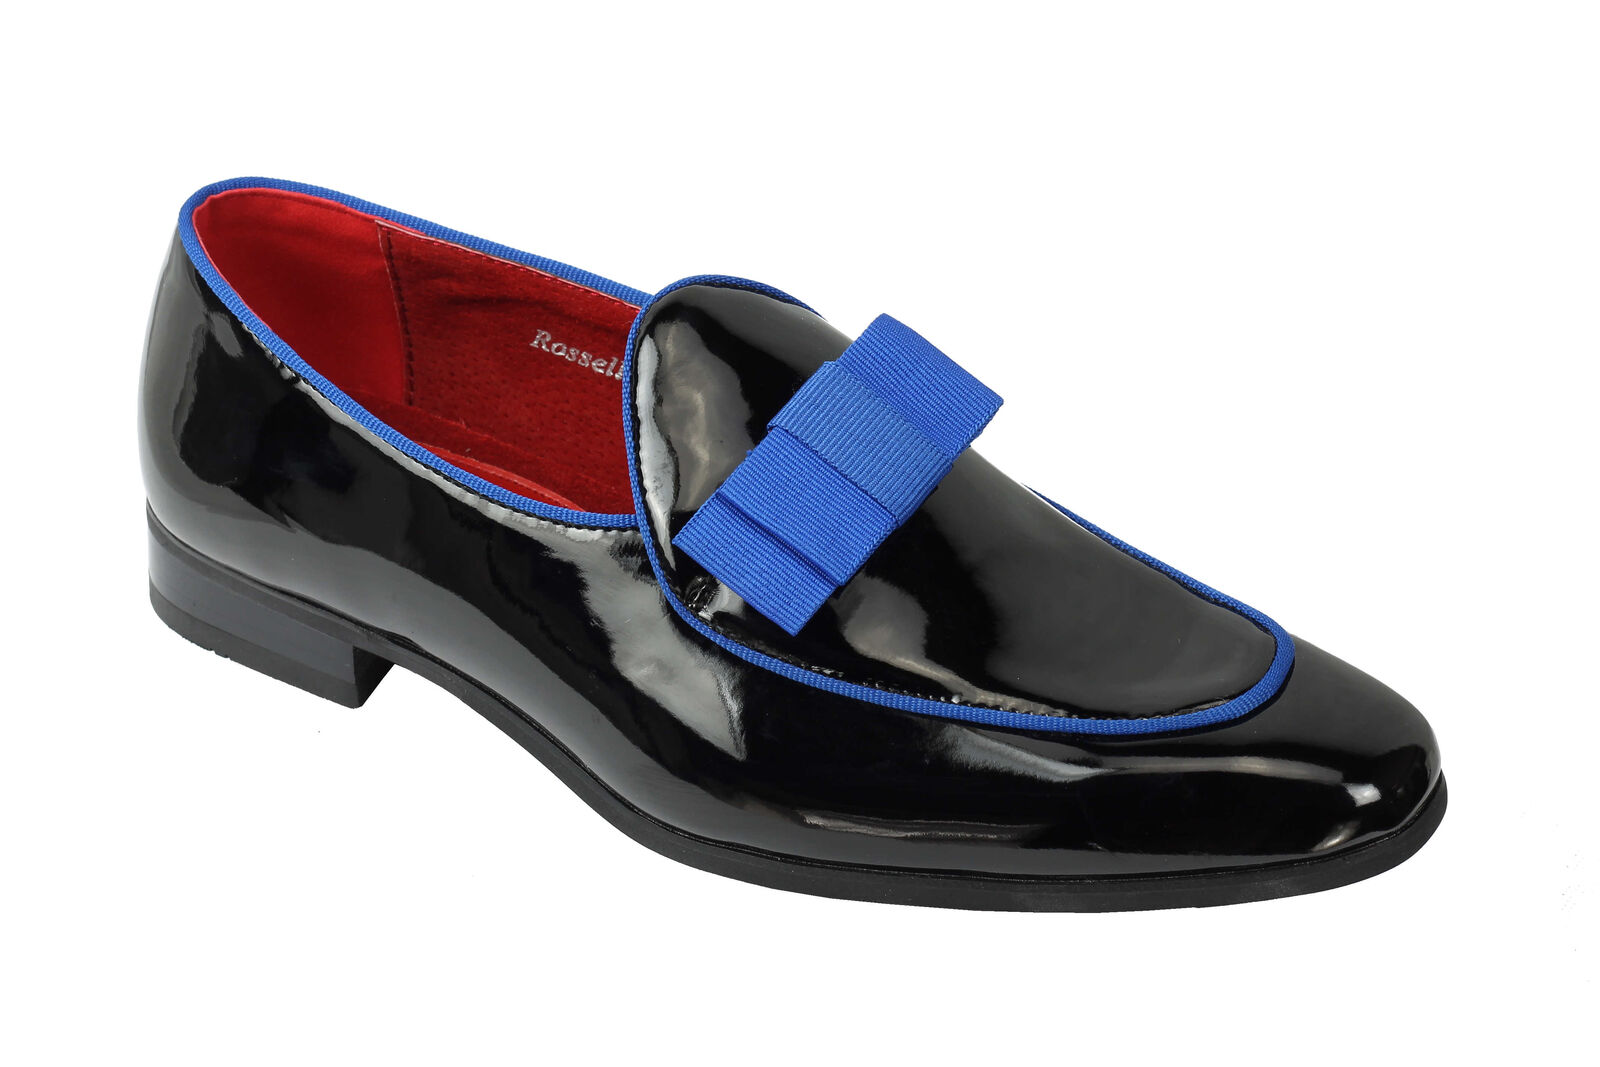 Mens Patent Leather Lined Black Blue Bowtie Tassel Slip on Loafer Smart Shoes